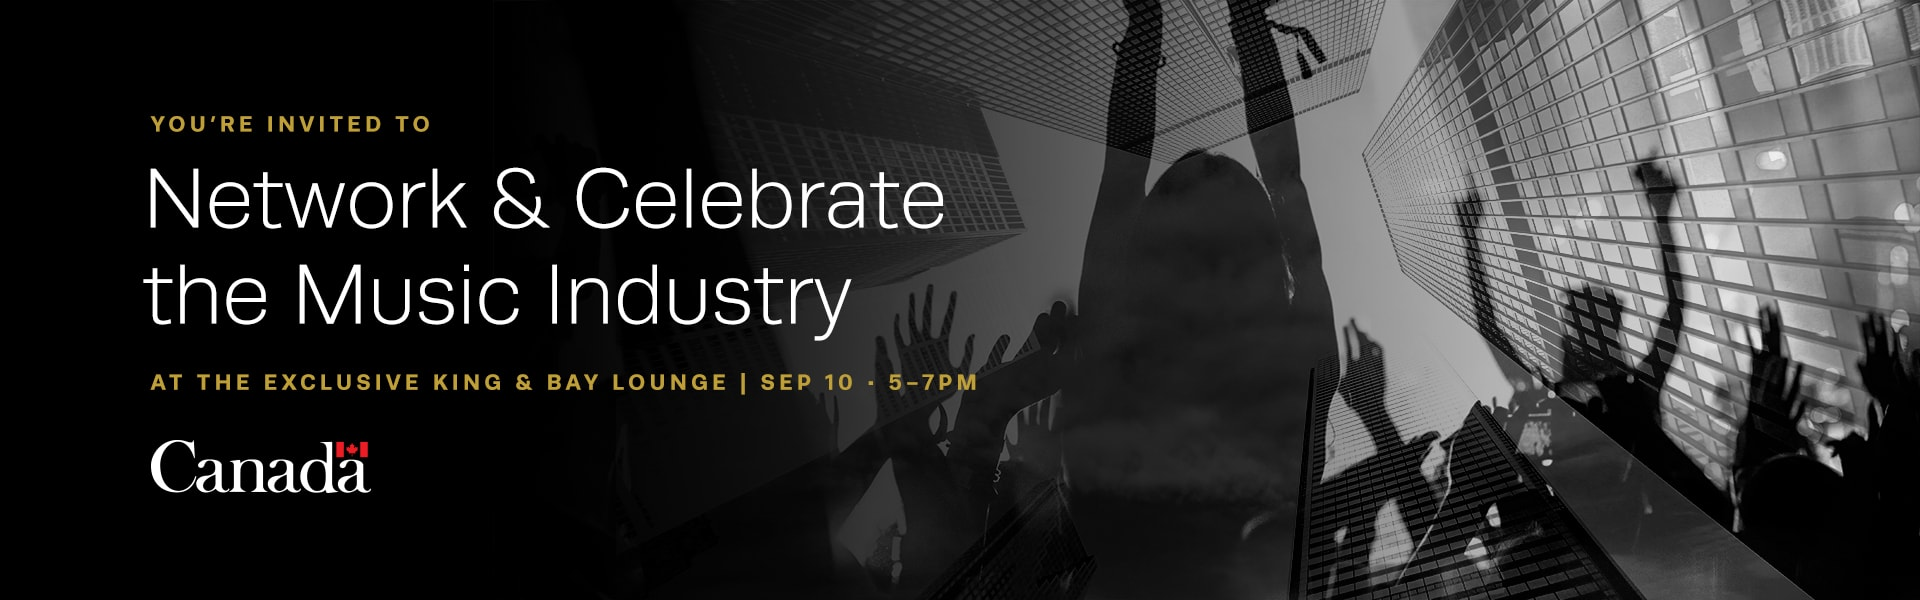 Network & Celebrate the Music Industry at King & Bay in Toronto